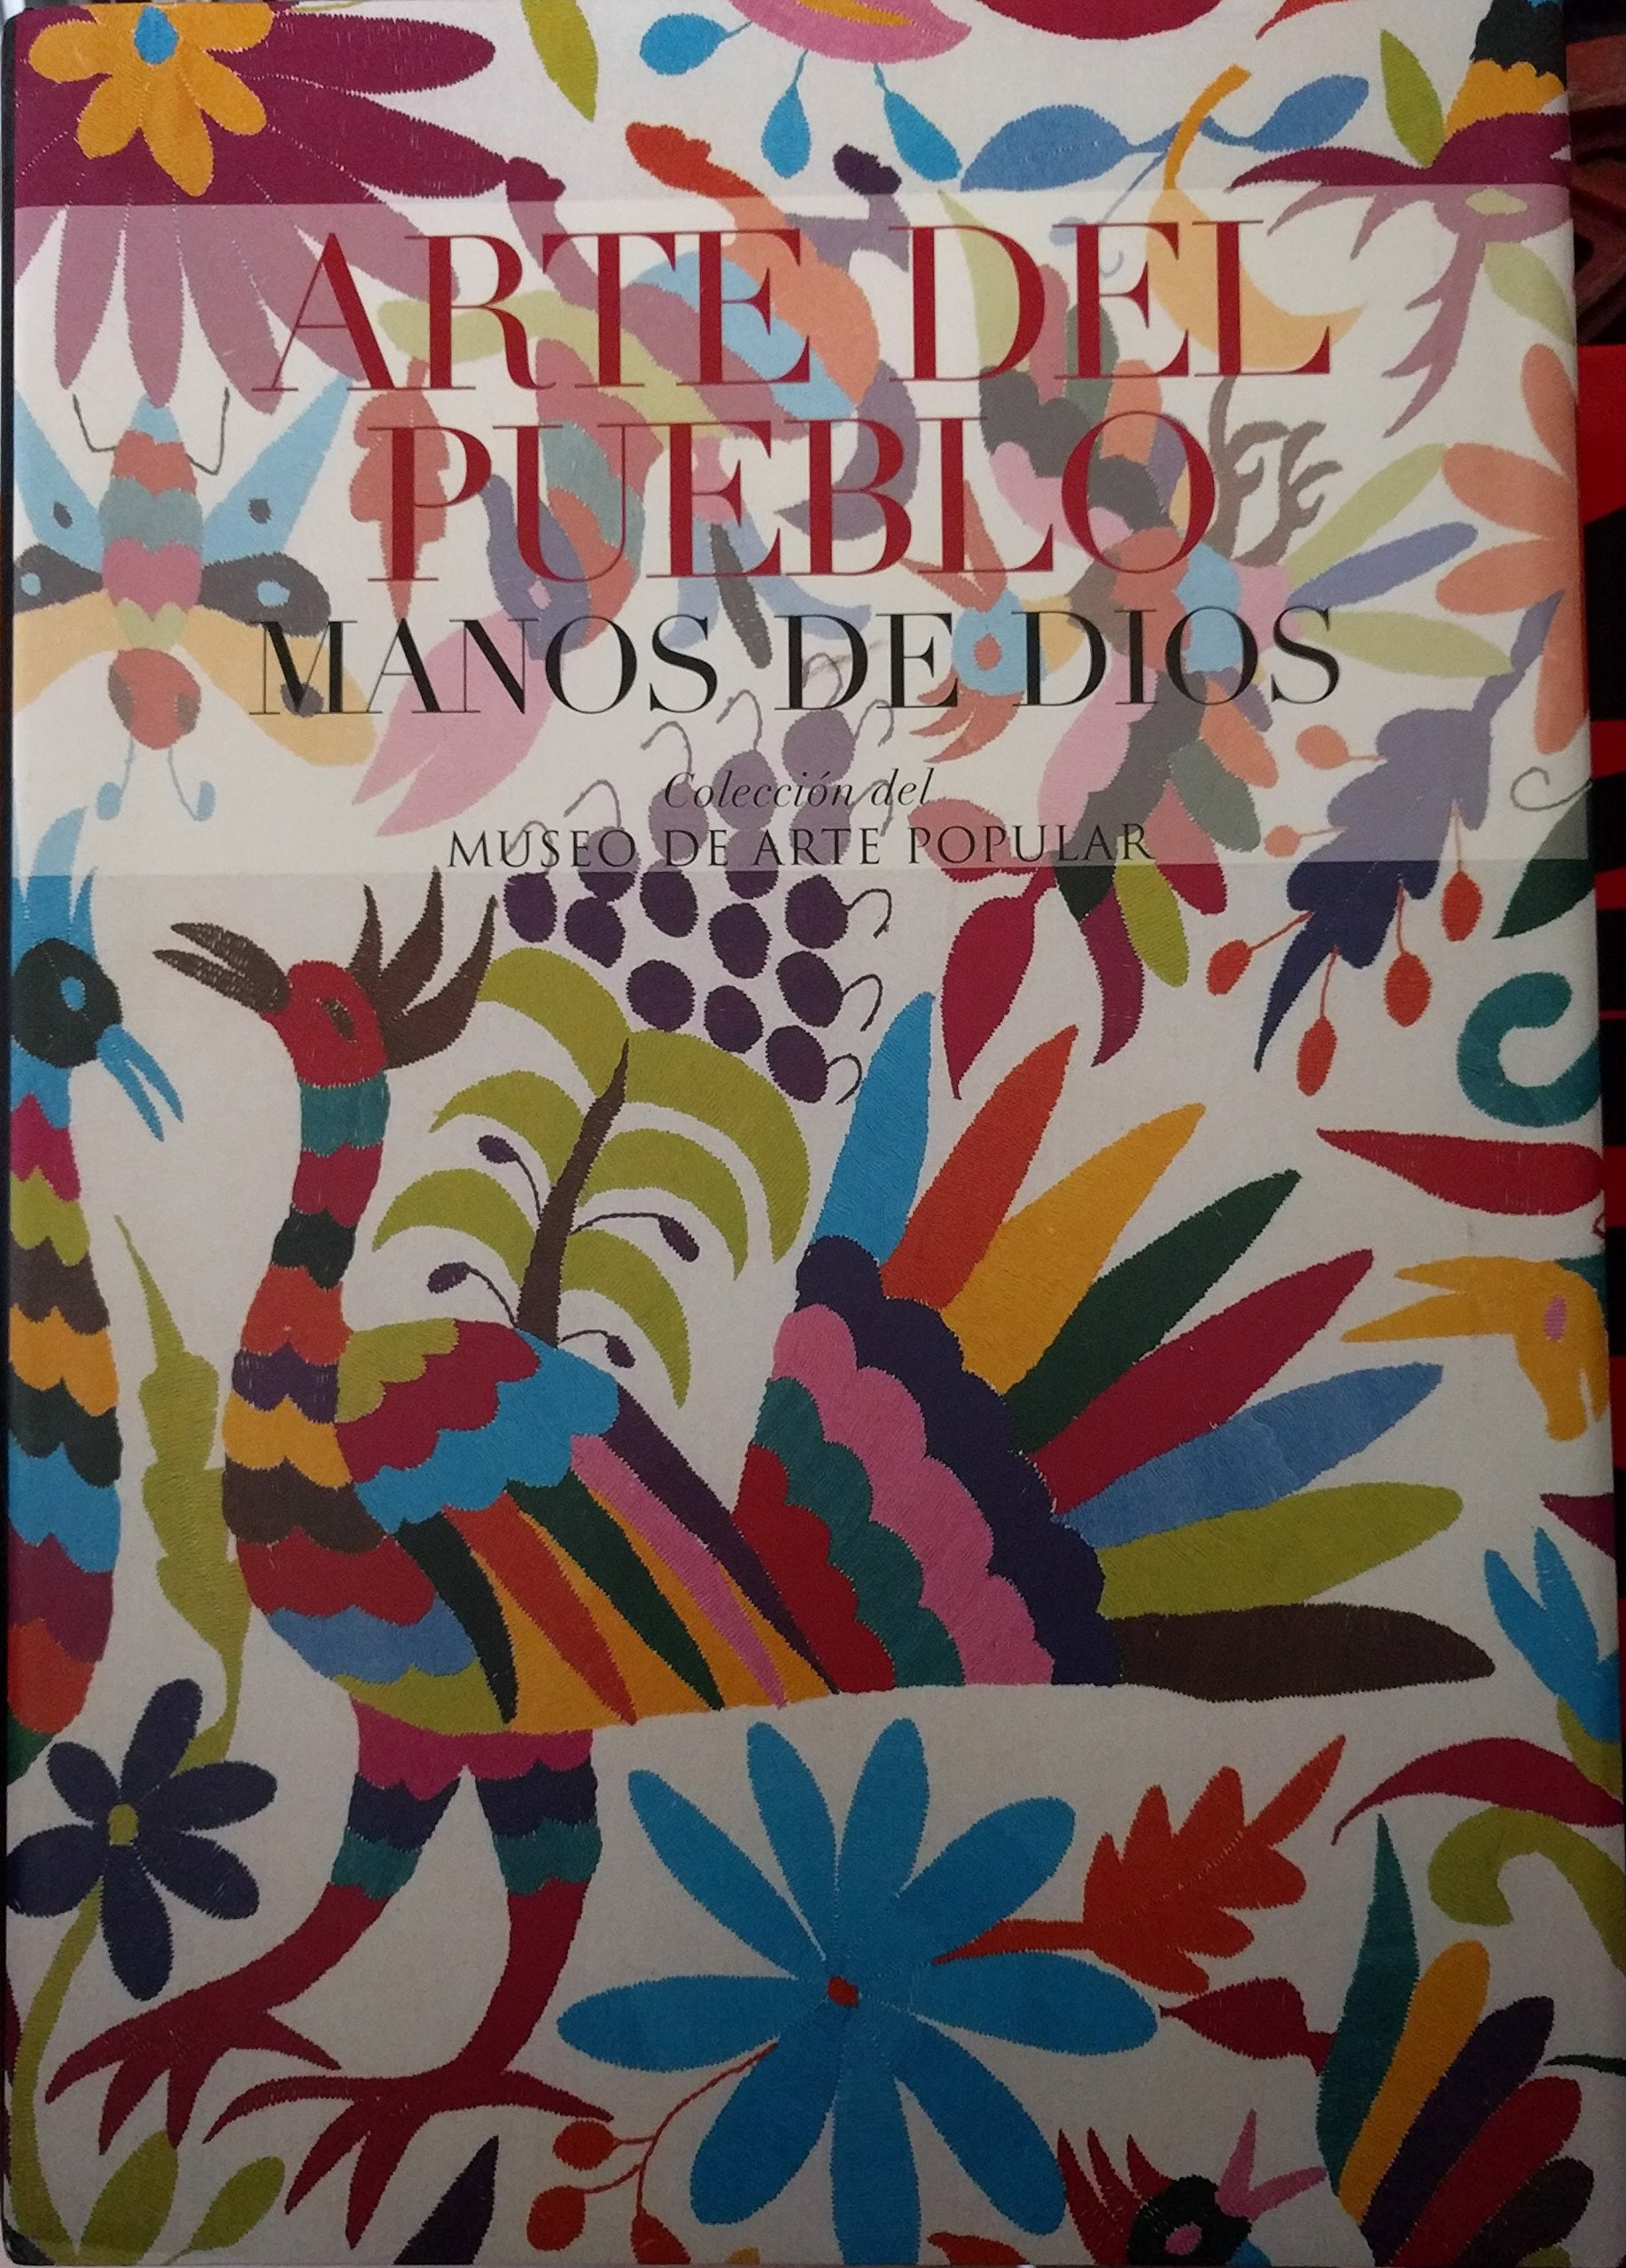 Arte Del Pueblo, Manos De Dios/People Art, God Hands (Spanish Edition) (Spanish) Hardcover – 2004